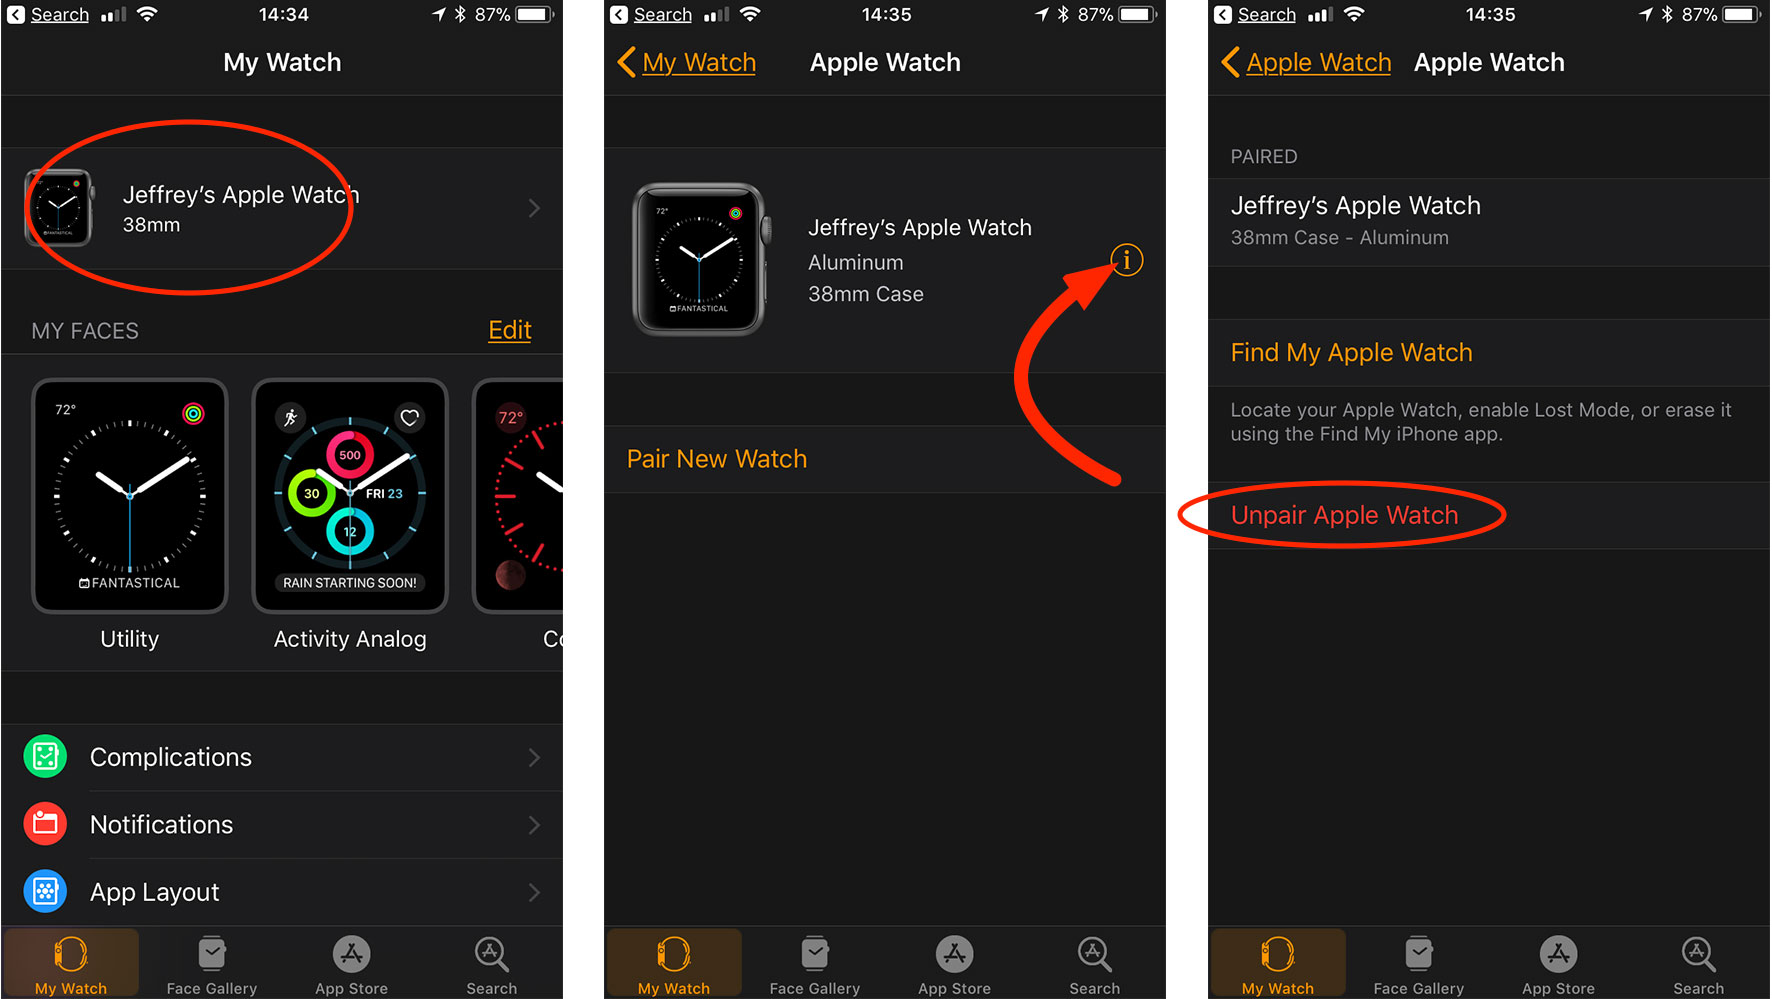 Apple Watch unpairing process on iPhone